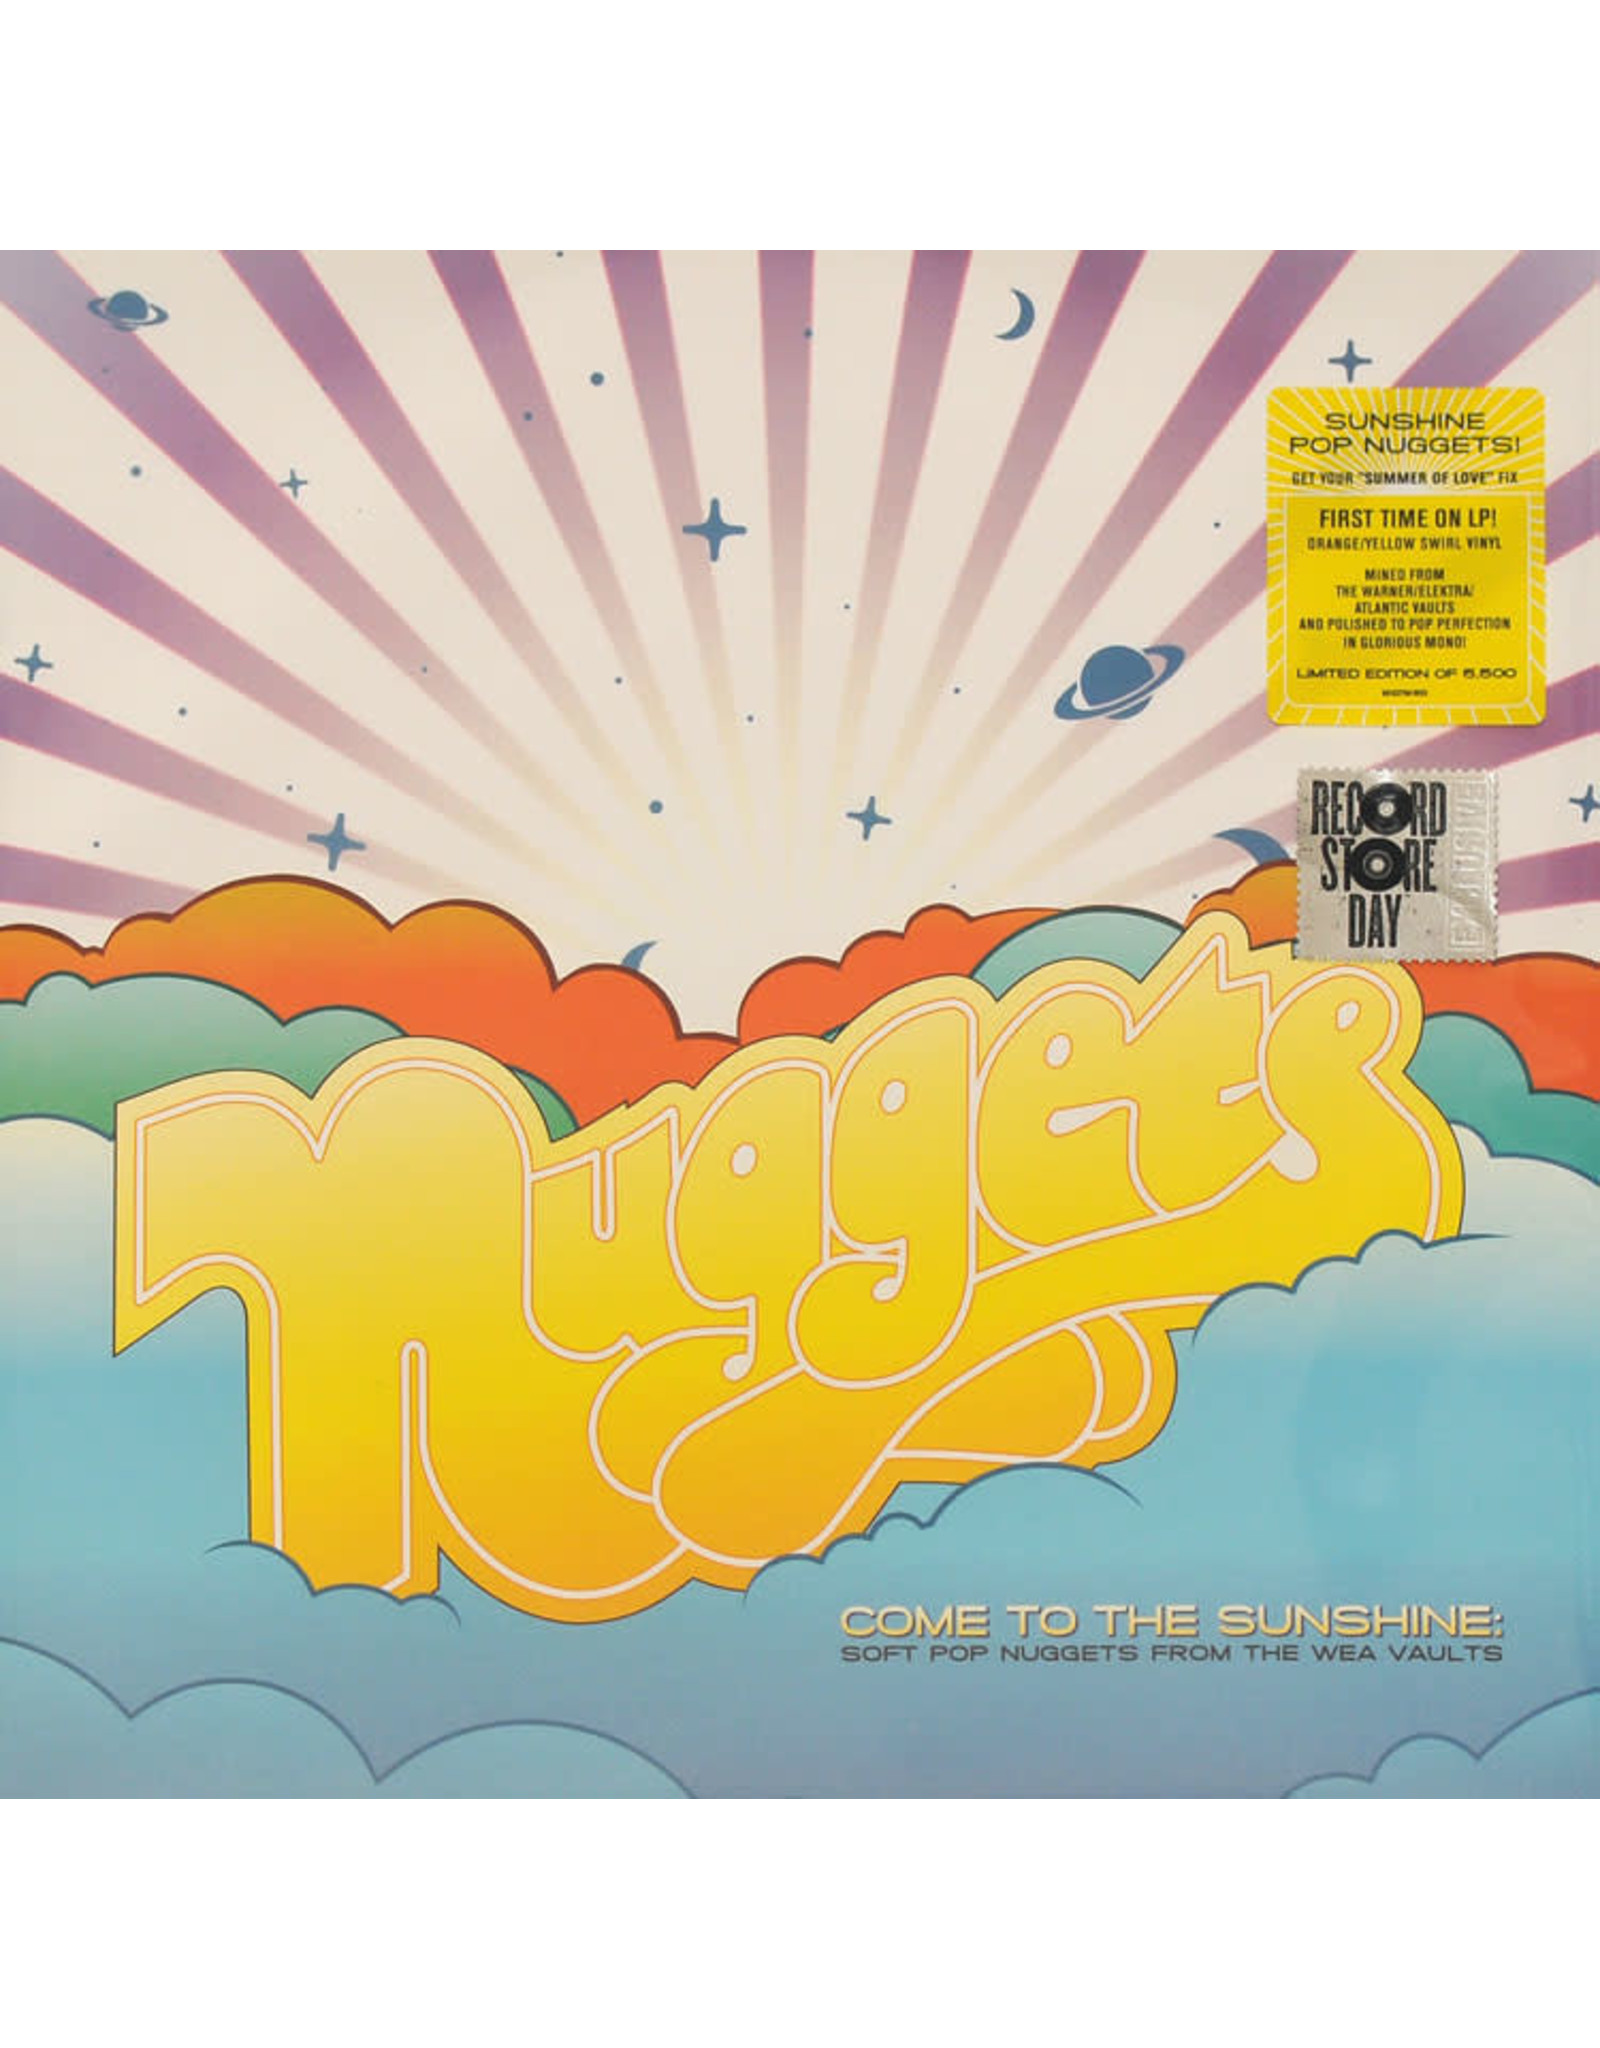 V/A - Come to the Sunshine: Soft Pop Nuggets From the WEA Vaults LP